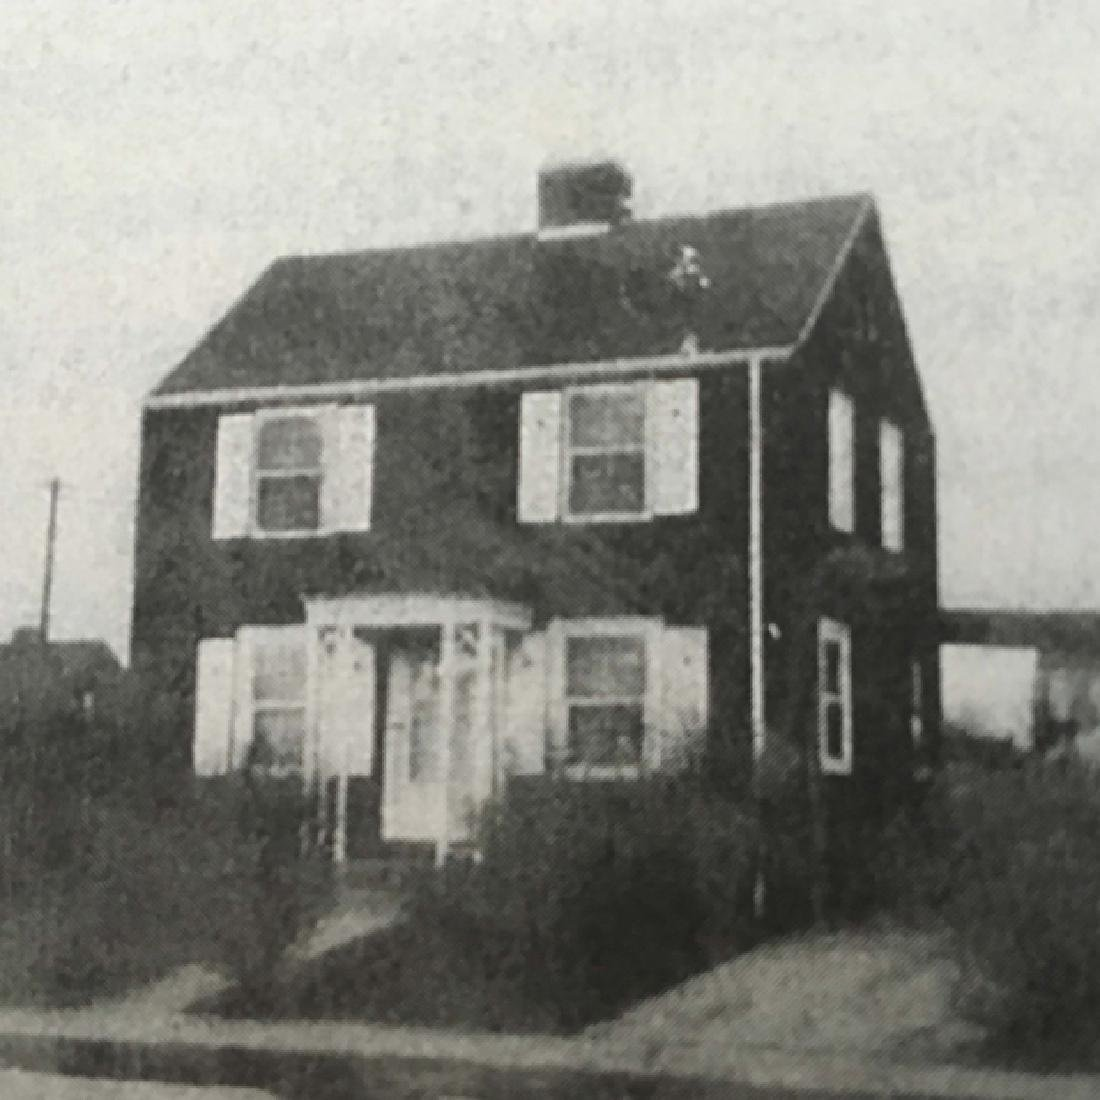 The Rosa Parks Family Home